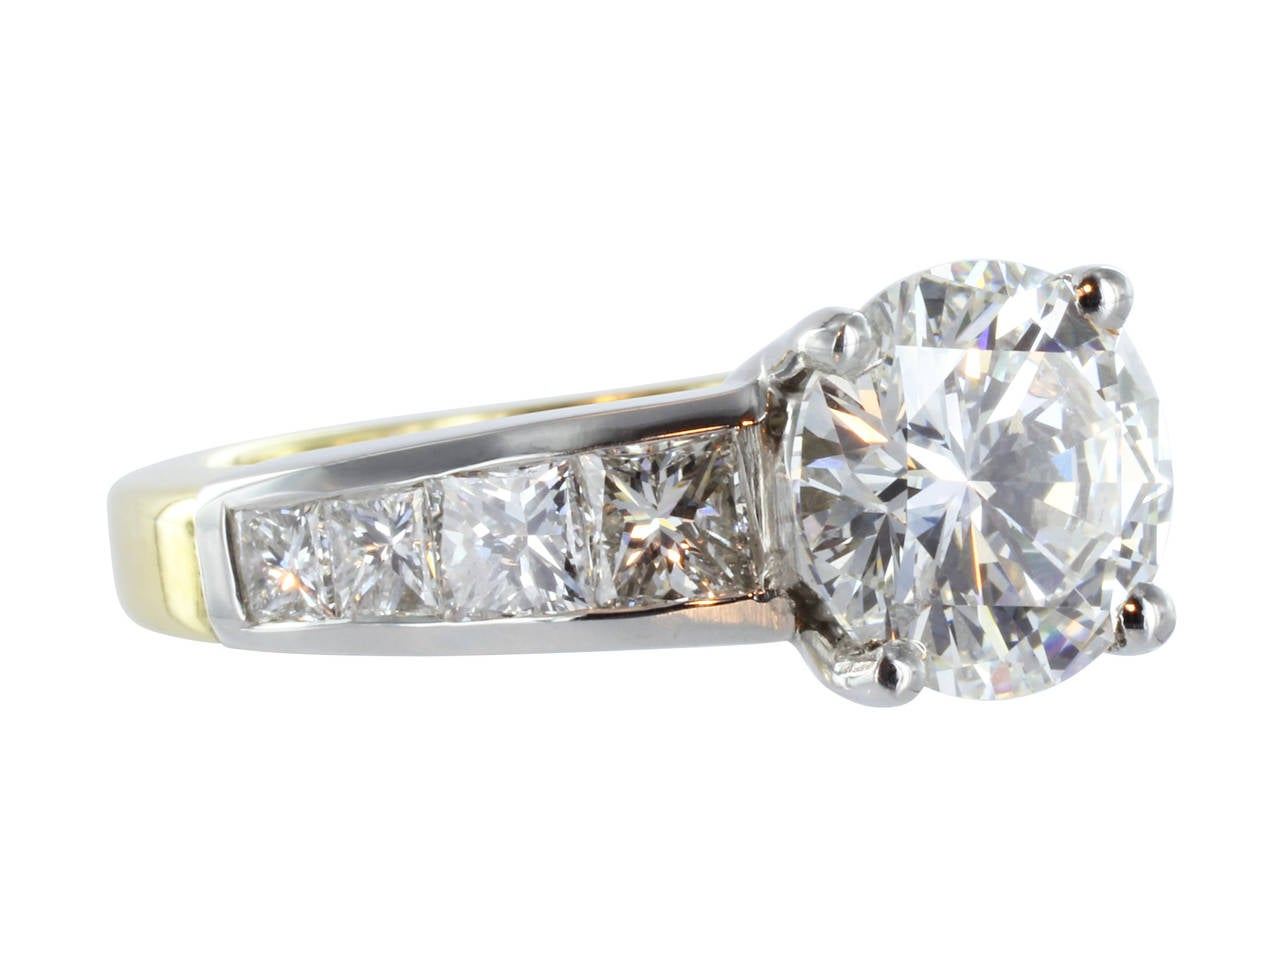 Platinum and 18 karat yellow gold ring consisting of one GIA certified round brilliant cut diamond weighing 2.26 carats, with a color of G and a clarity of VS2. The center stone is flanked by 8 channel set princess cut diamonds, 4 on each side